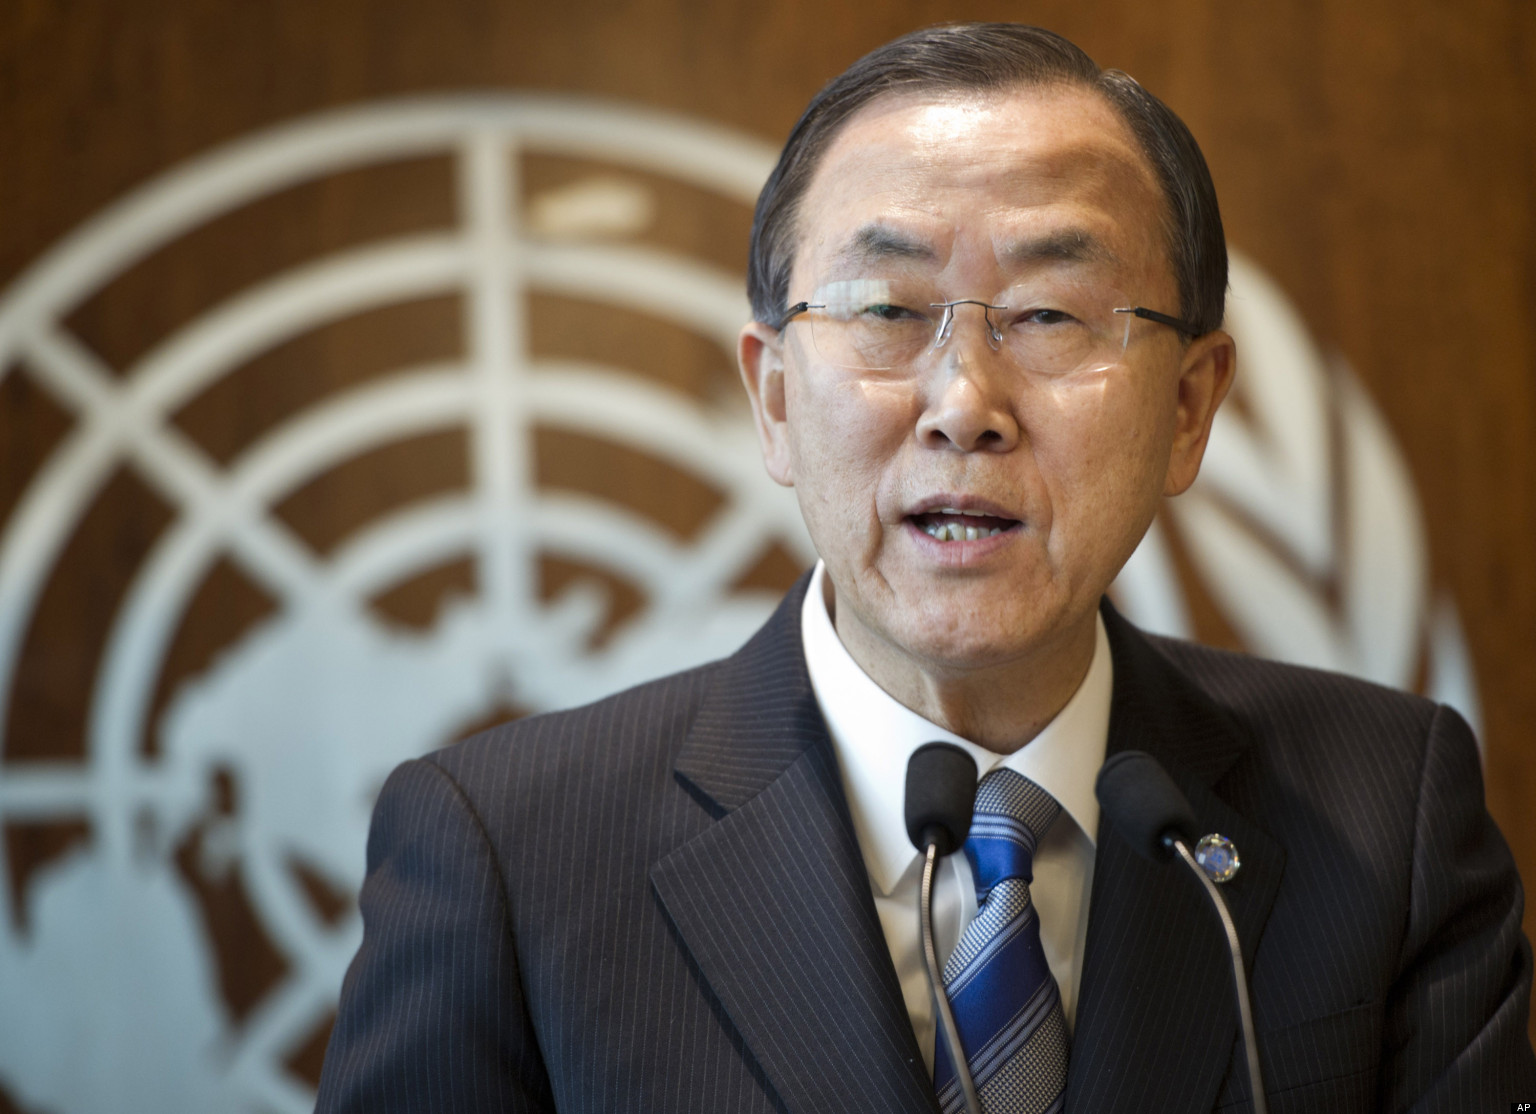 United Nations Secretary-General Ban Ki-moon announces Thursday, March 21, 2013, that the United Nations will investigate the possible use of chemical weapons in Syria, at United Nations headquarters. The U.N. chief indicated that the investigation would be broader than the Syrian government's request for an independent probe of an alleged chemical weapons attack on Tuesday, saying he was aware of other allegations and hoped the probe would help secure Syria's chemical weapons stockpile. (AP Photo/Mark Garten)